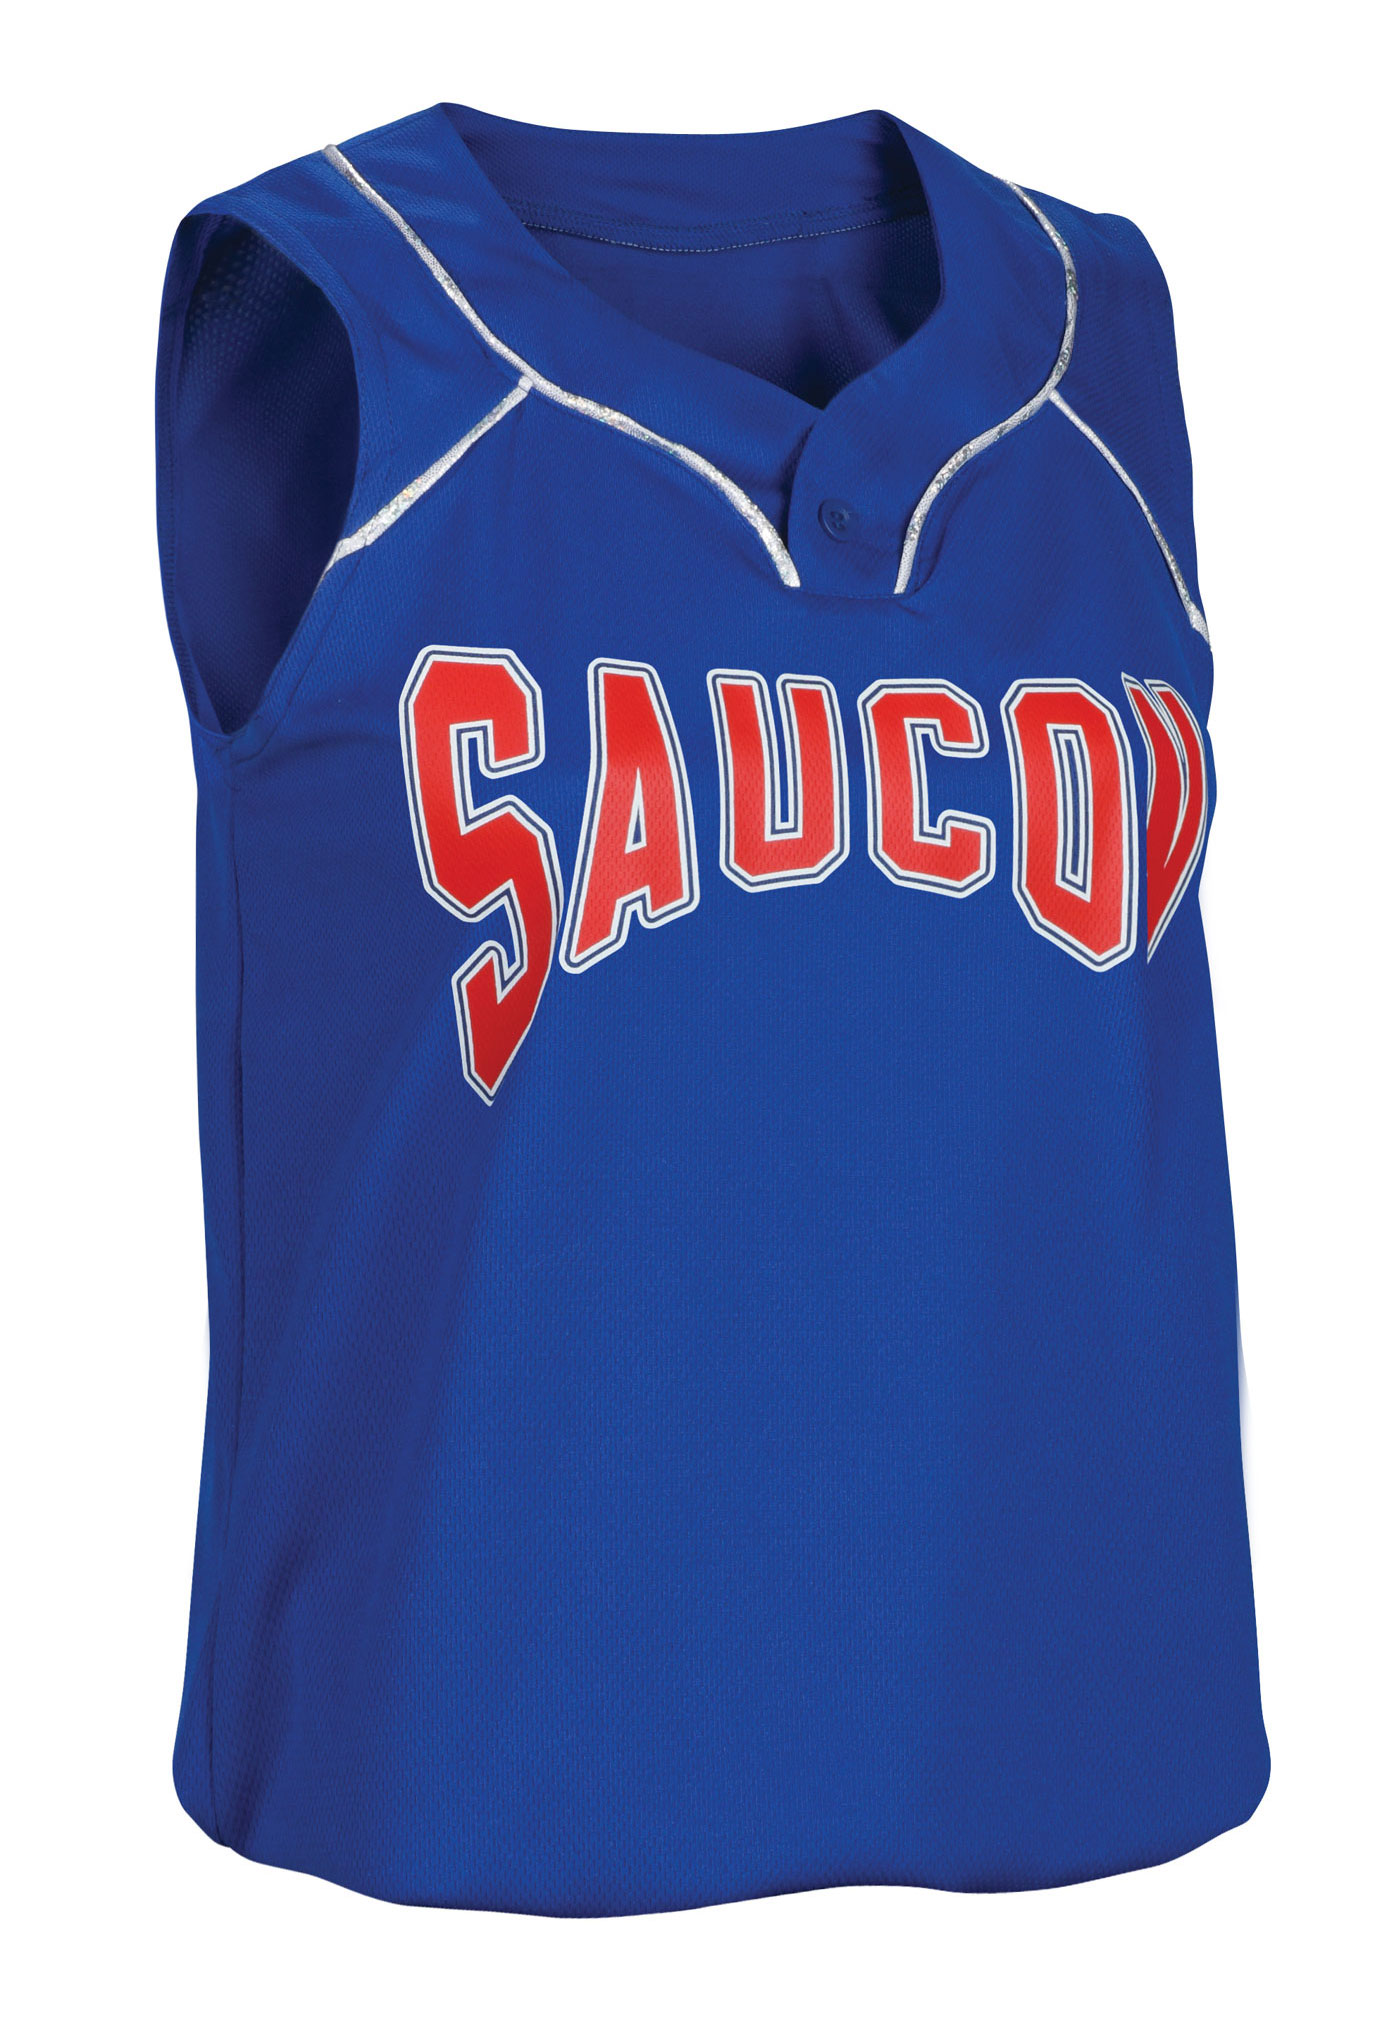 Youth Girls Turn Two Softball Jersey